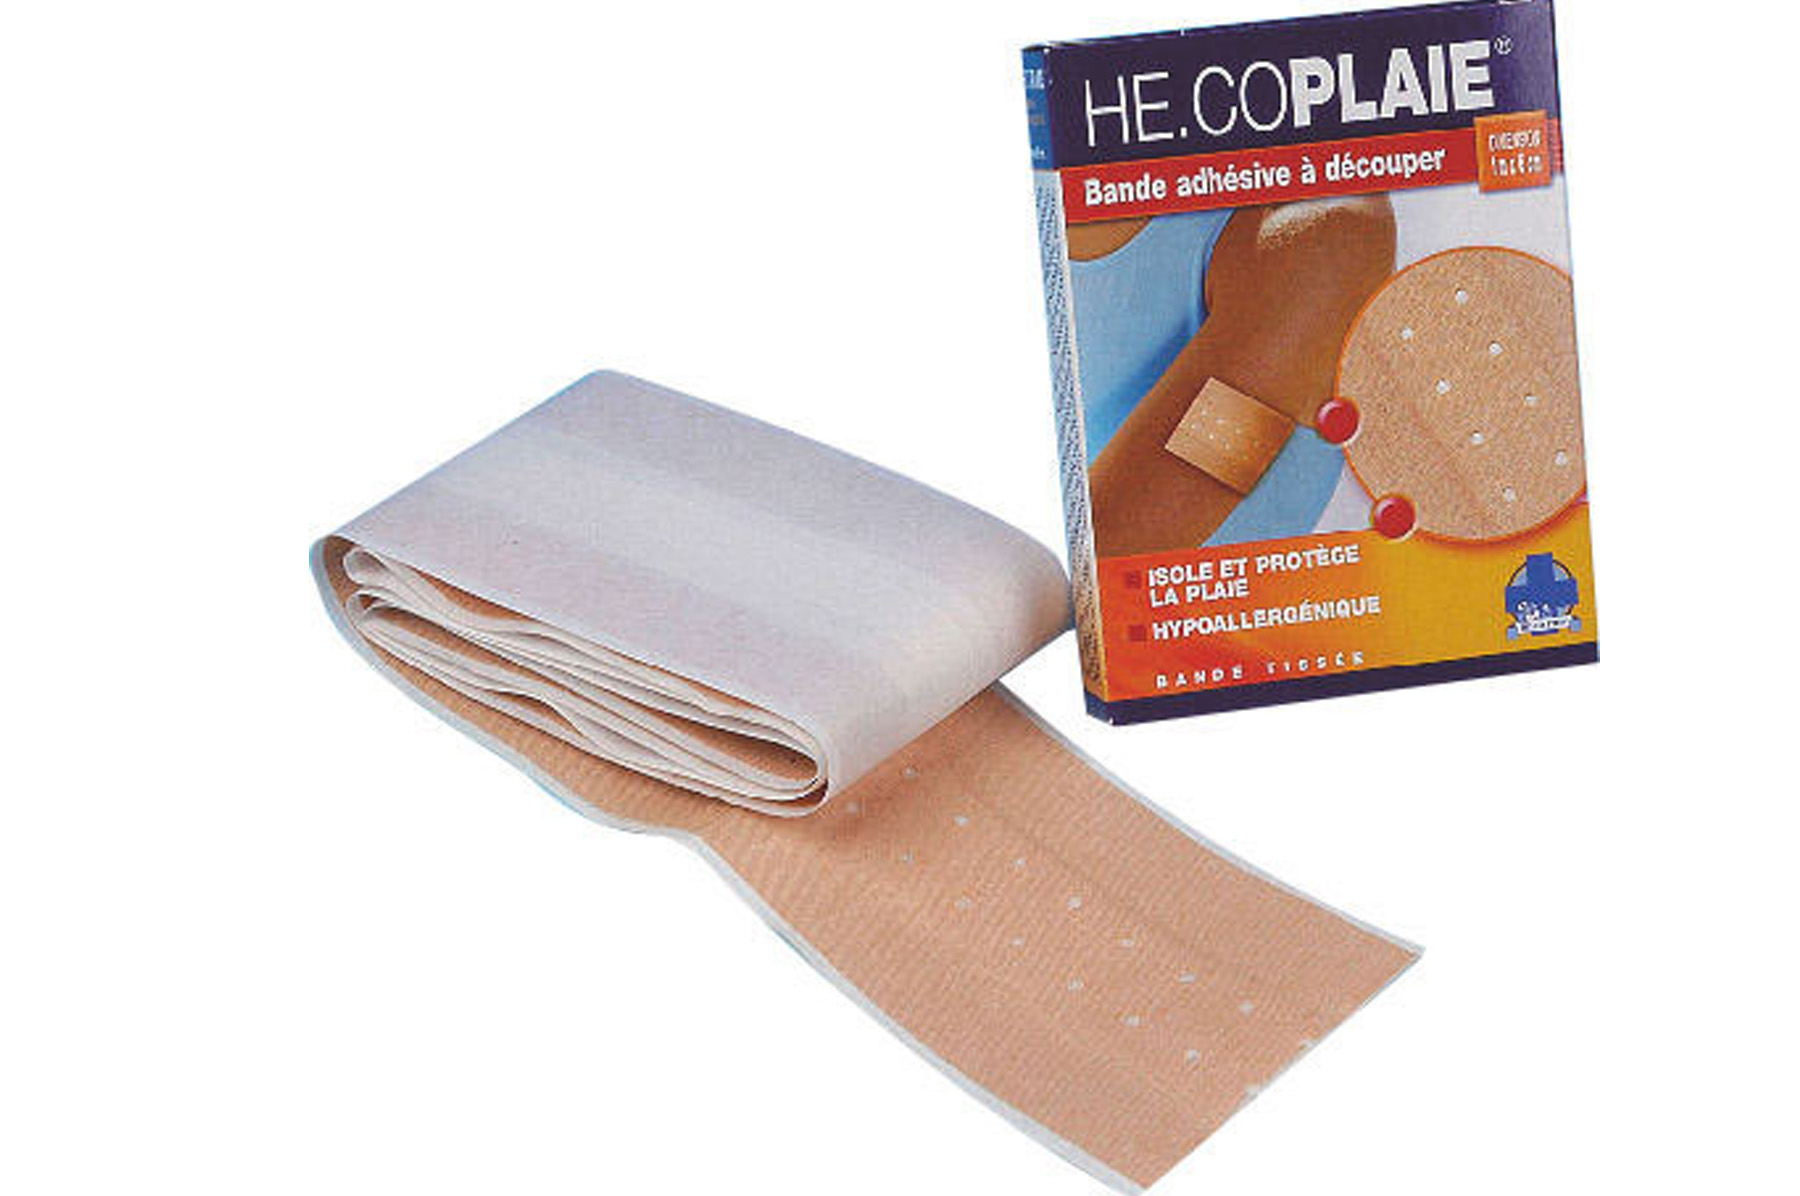 Bande adh sive d couper hecoplaie - Bande adhesive murale ...